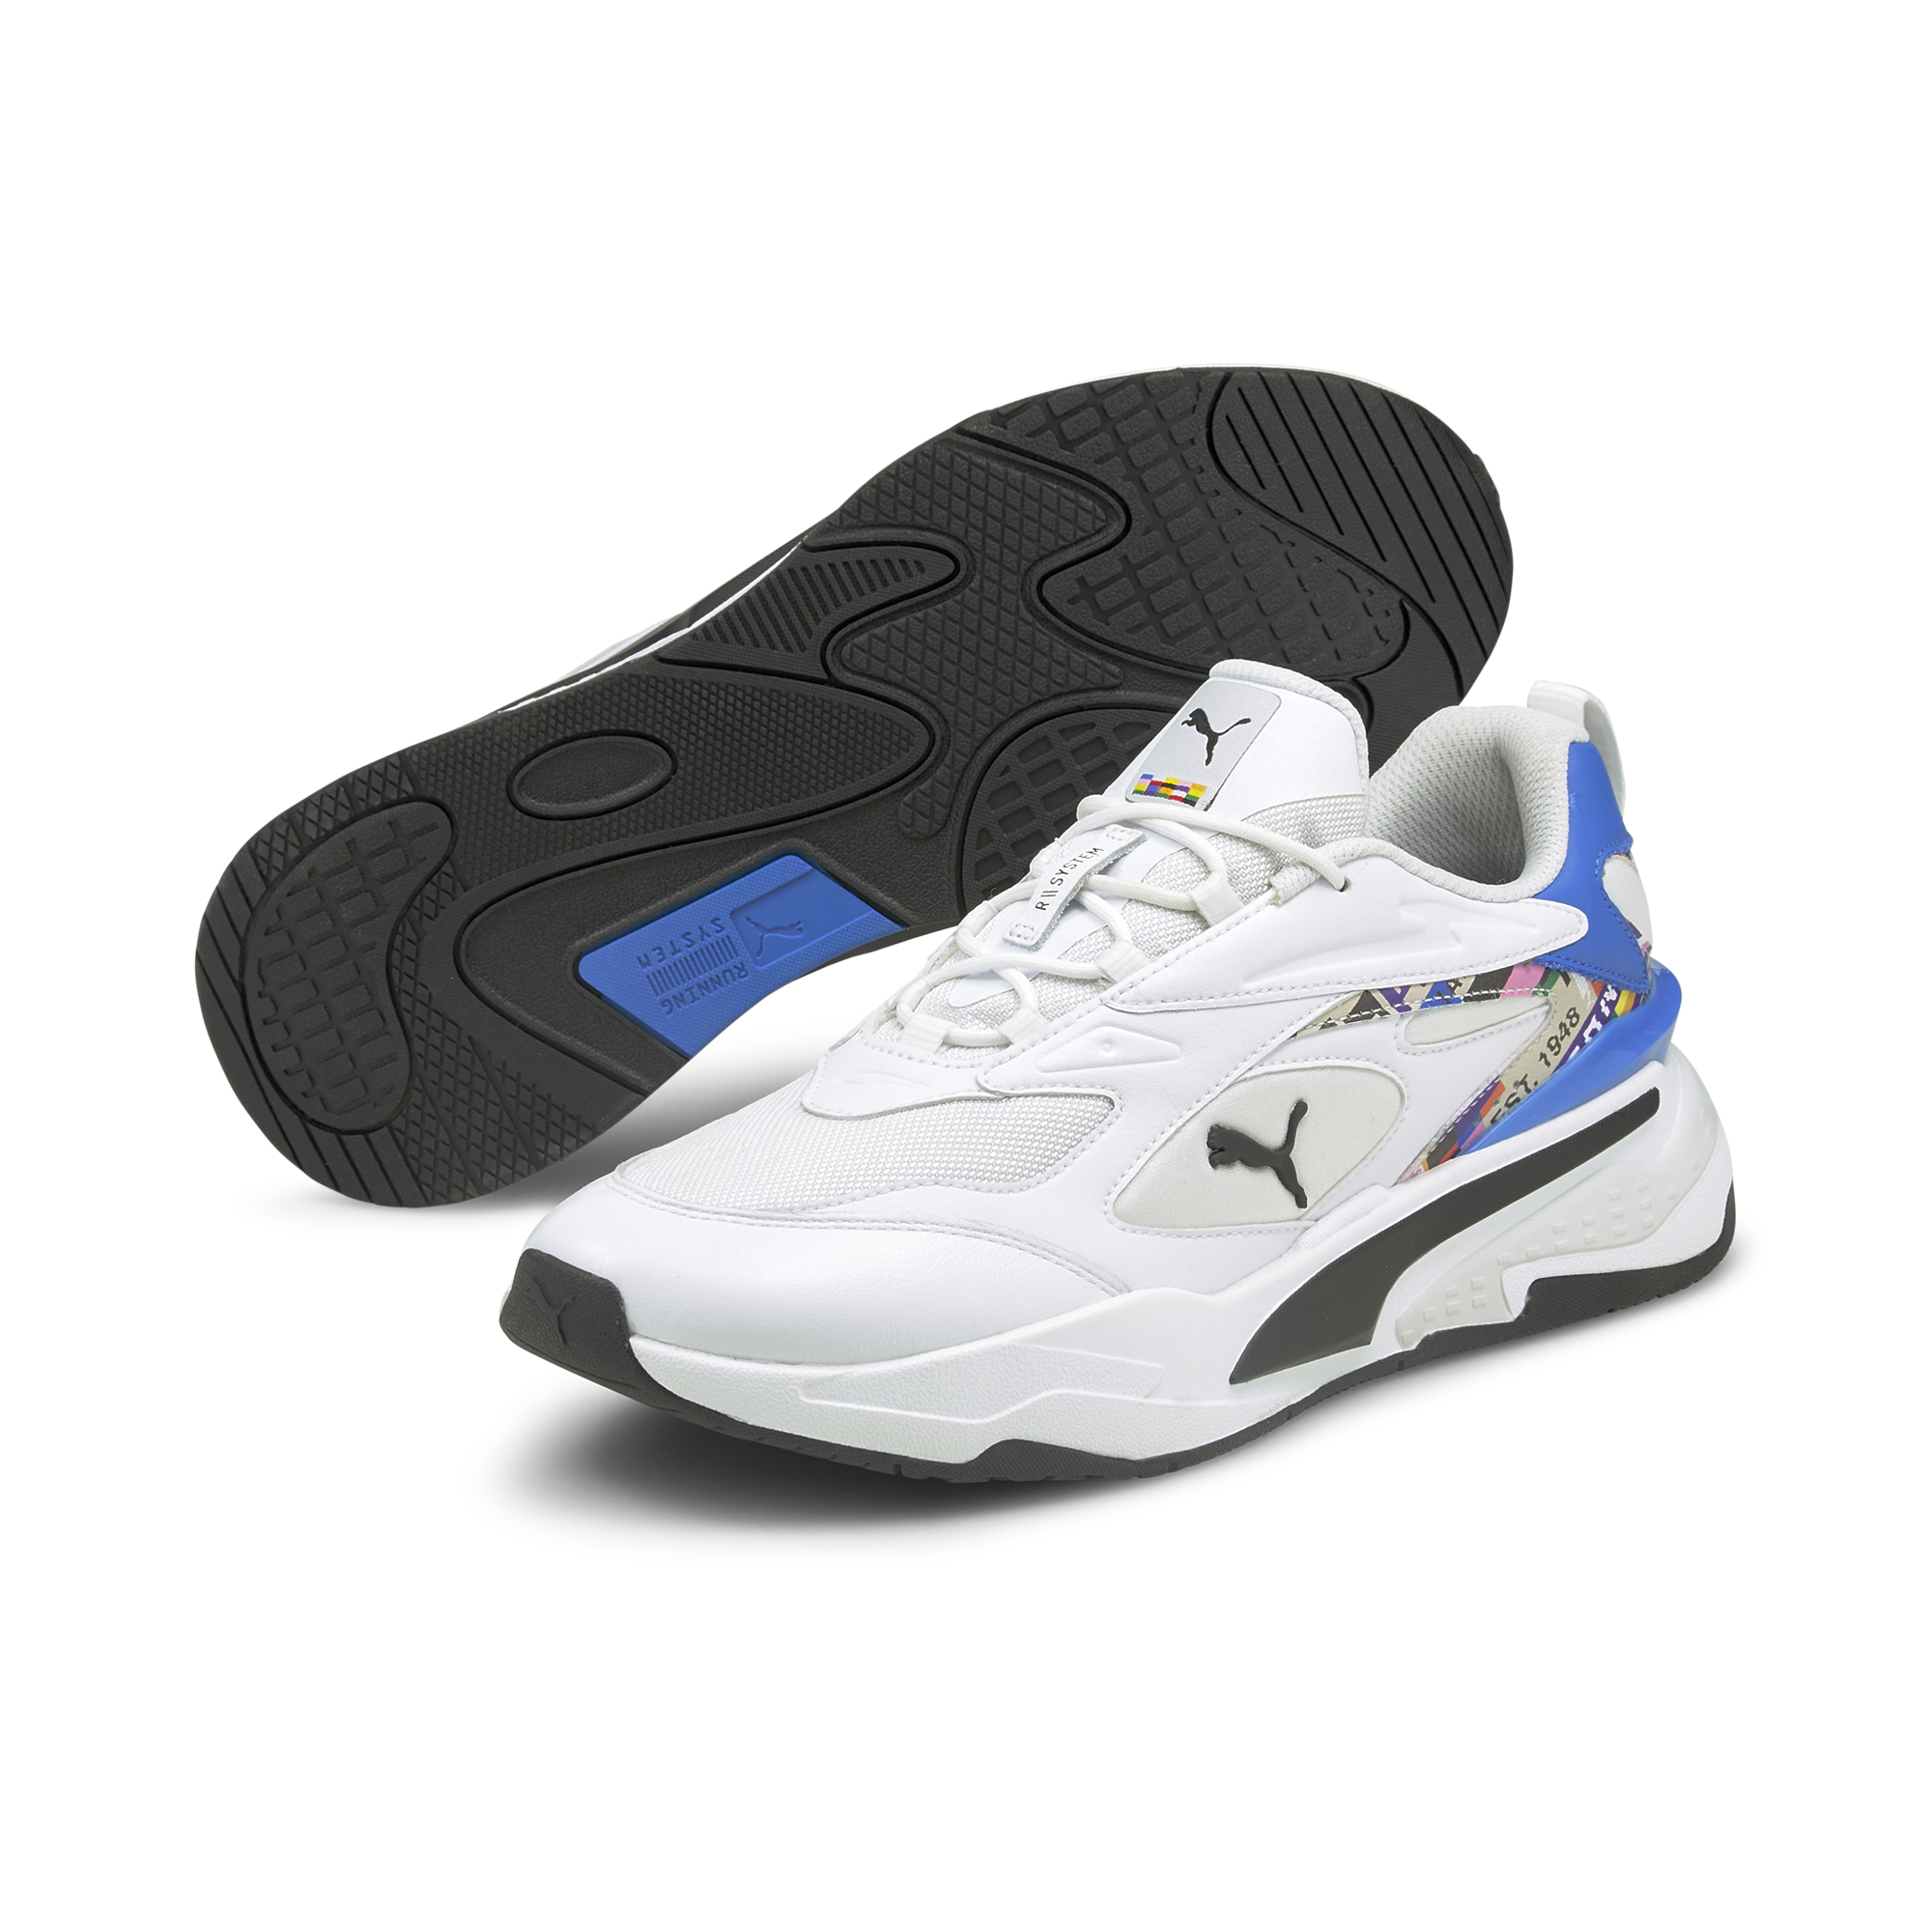 Puma RS-Fast International game sneakers